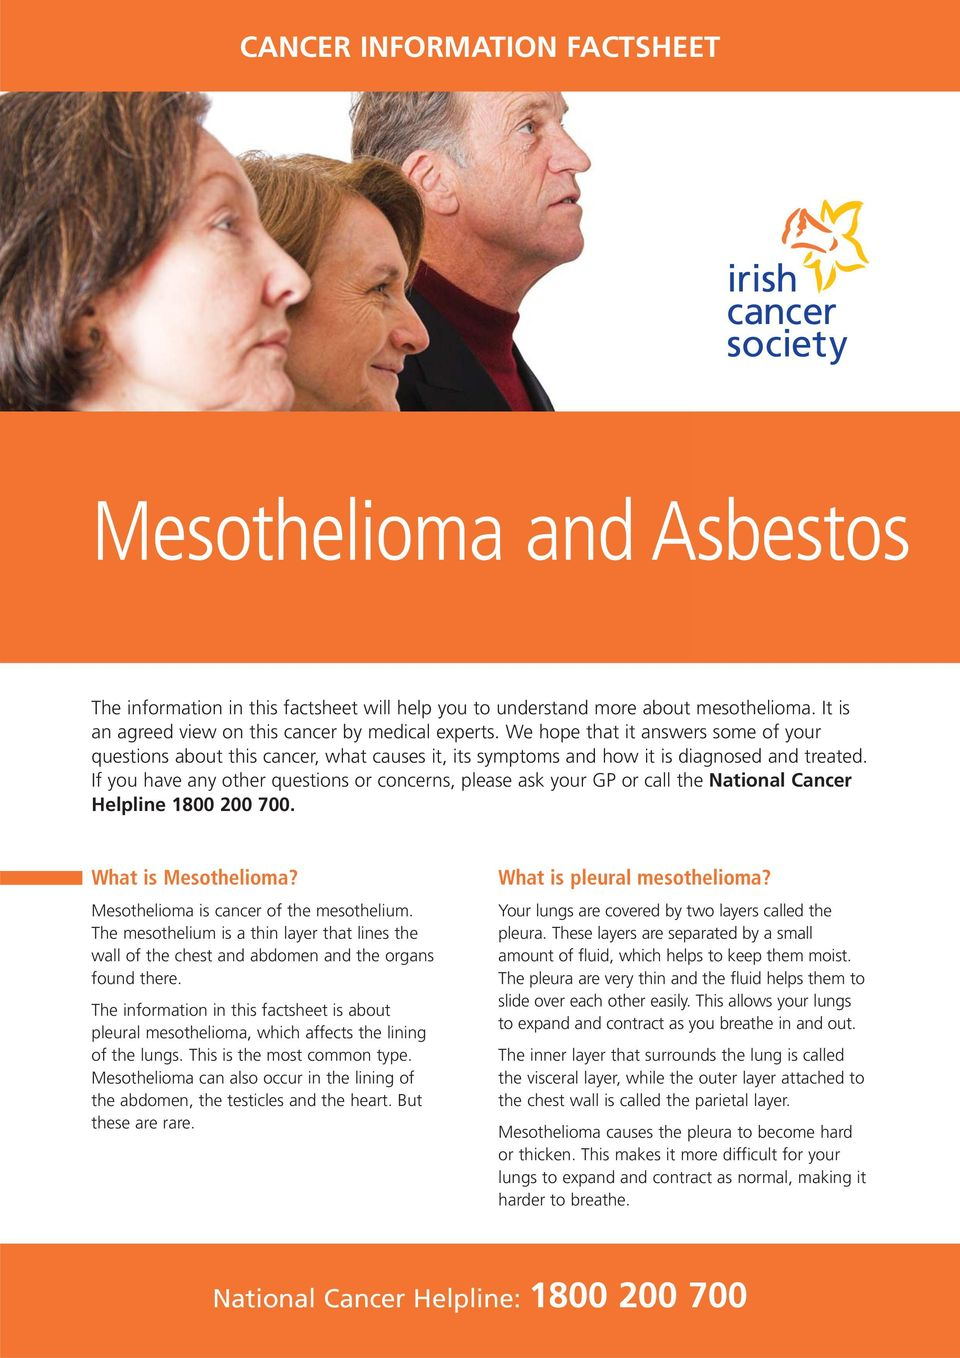 If you have any other questions or concerns, please ask your GP or call the National Cancer Helpline 1800 200 700. What is Mesothelioma? Mesothelioma is cancer of the mesothelium.